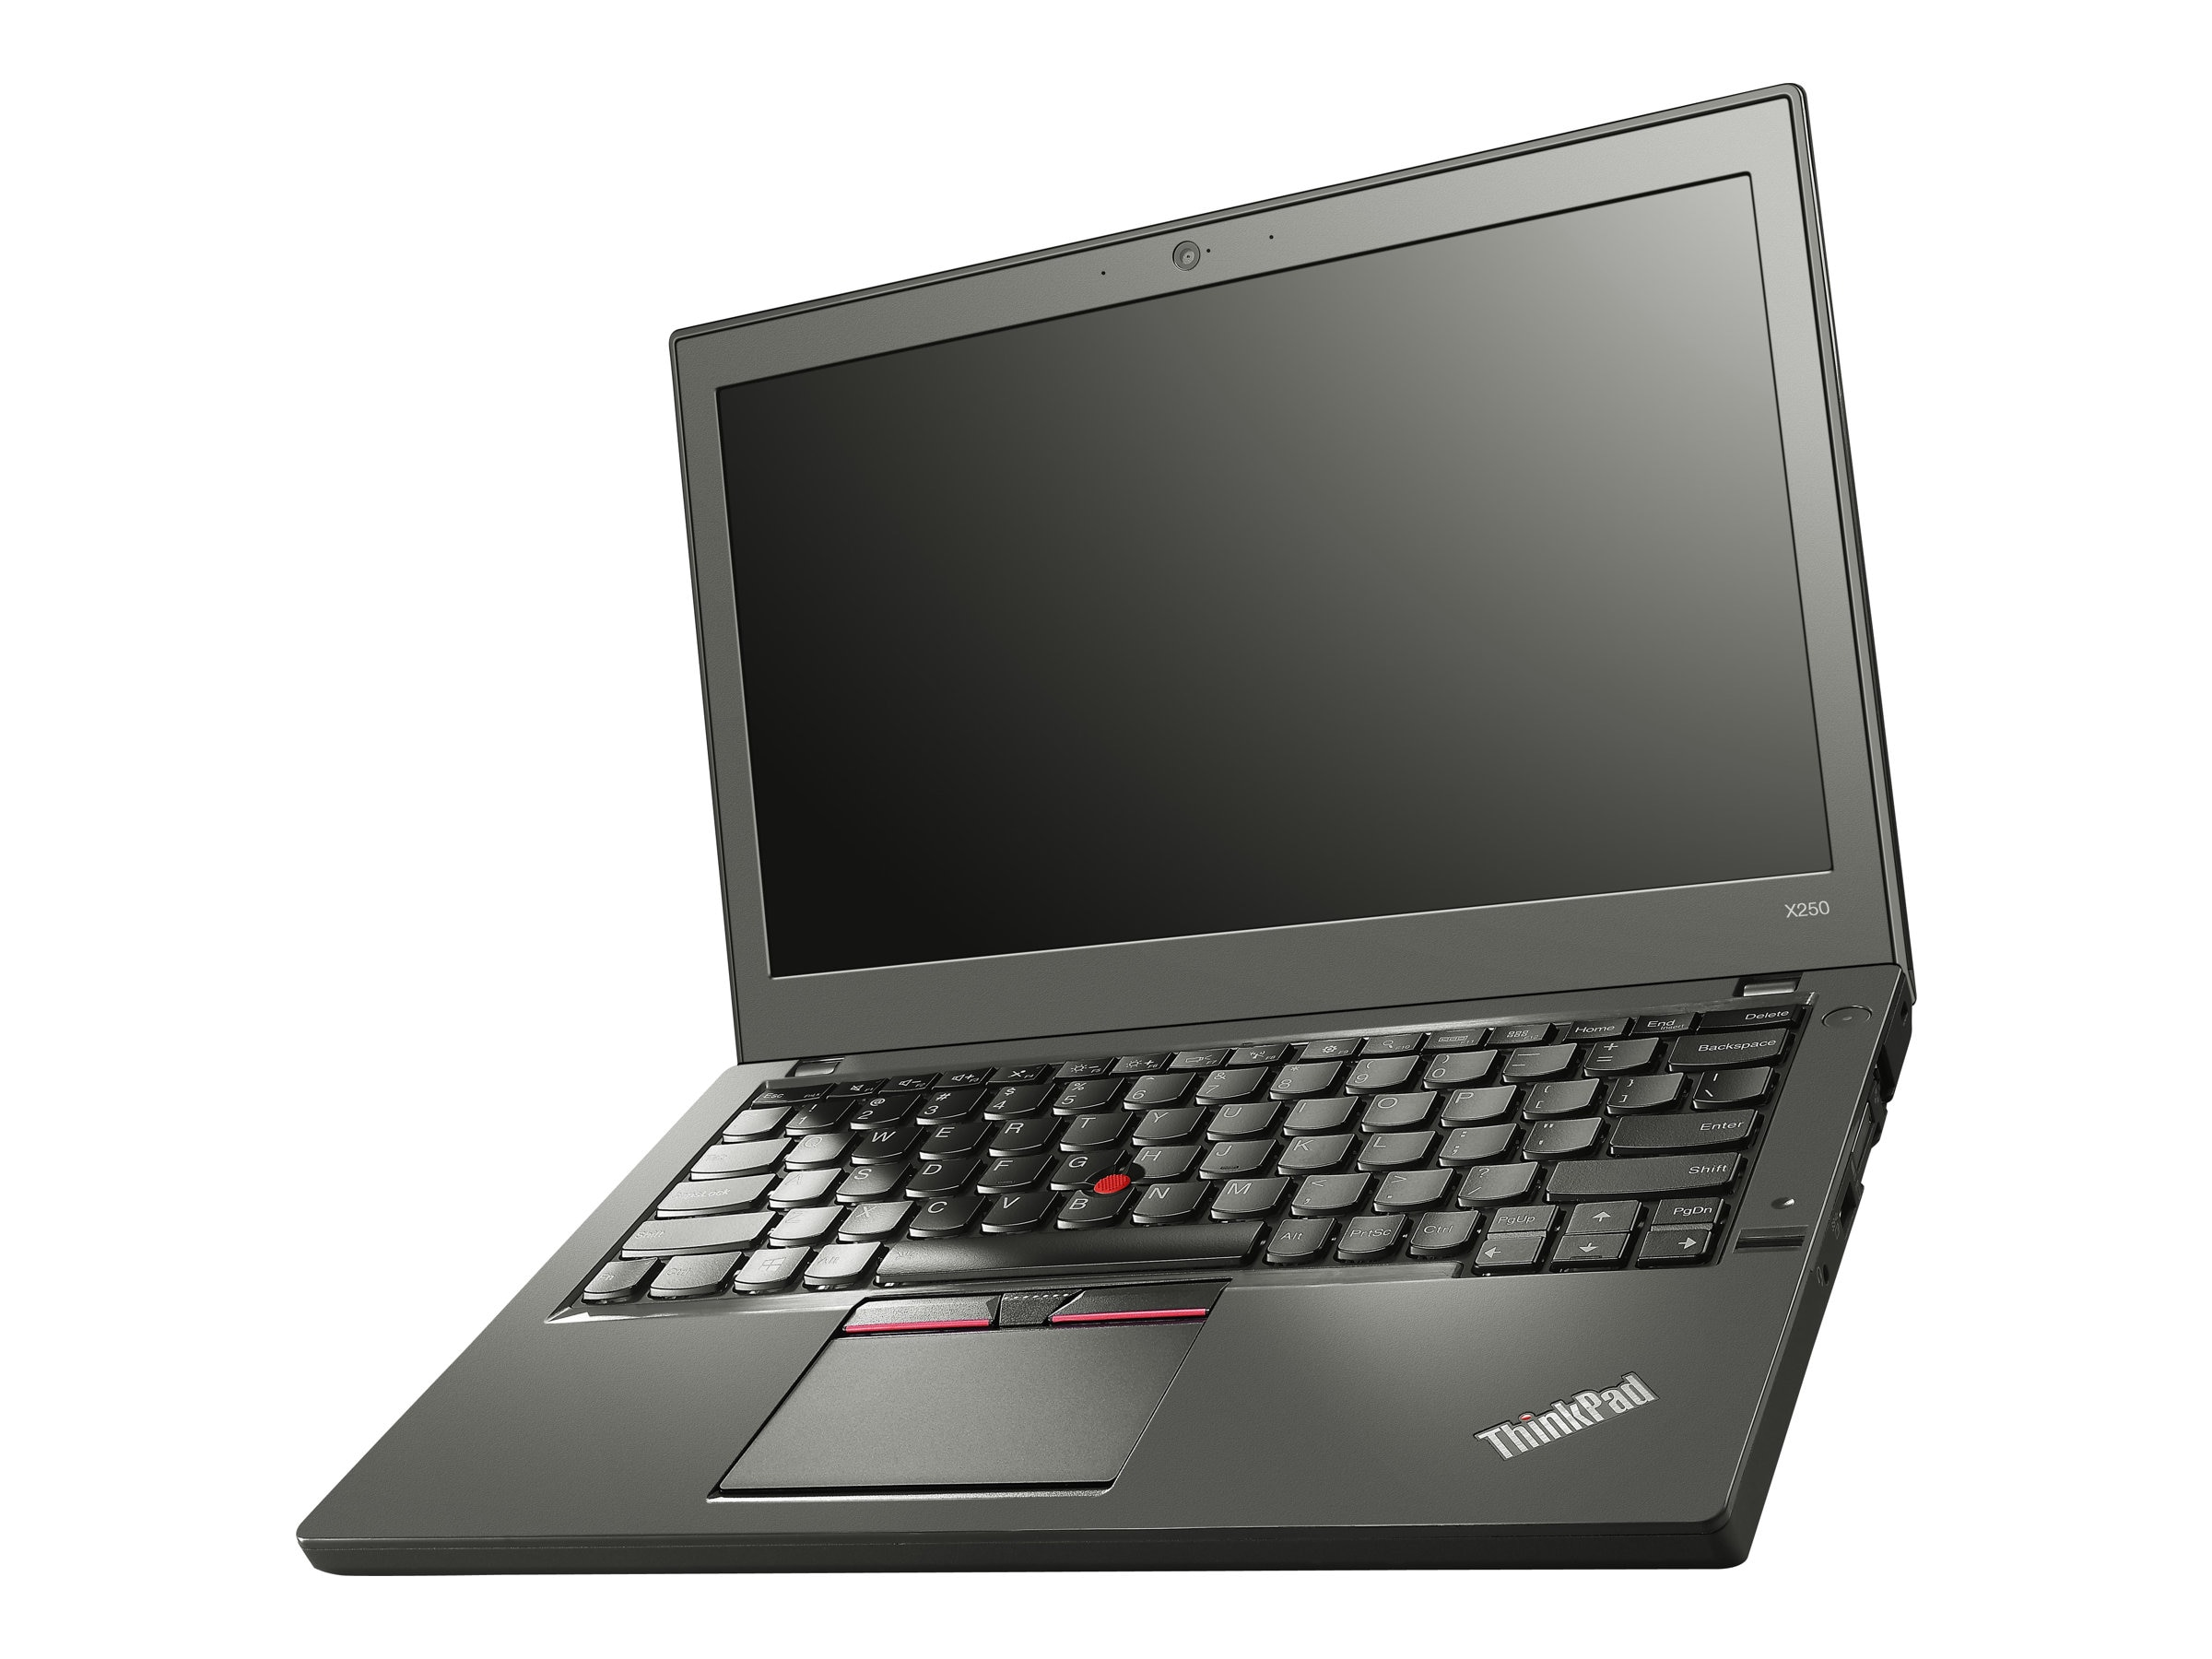 Lenovo TopSeller ThinkPad X250 2.2GHz Core i5 12.5in display